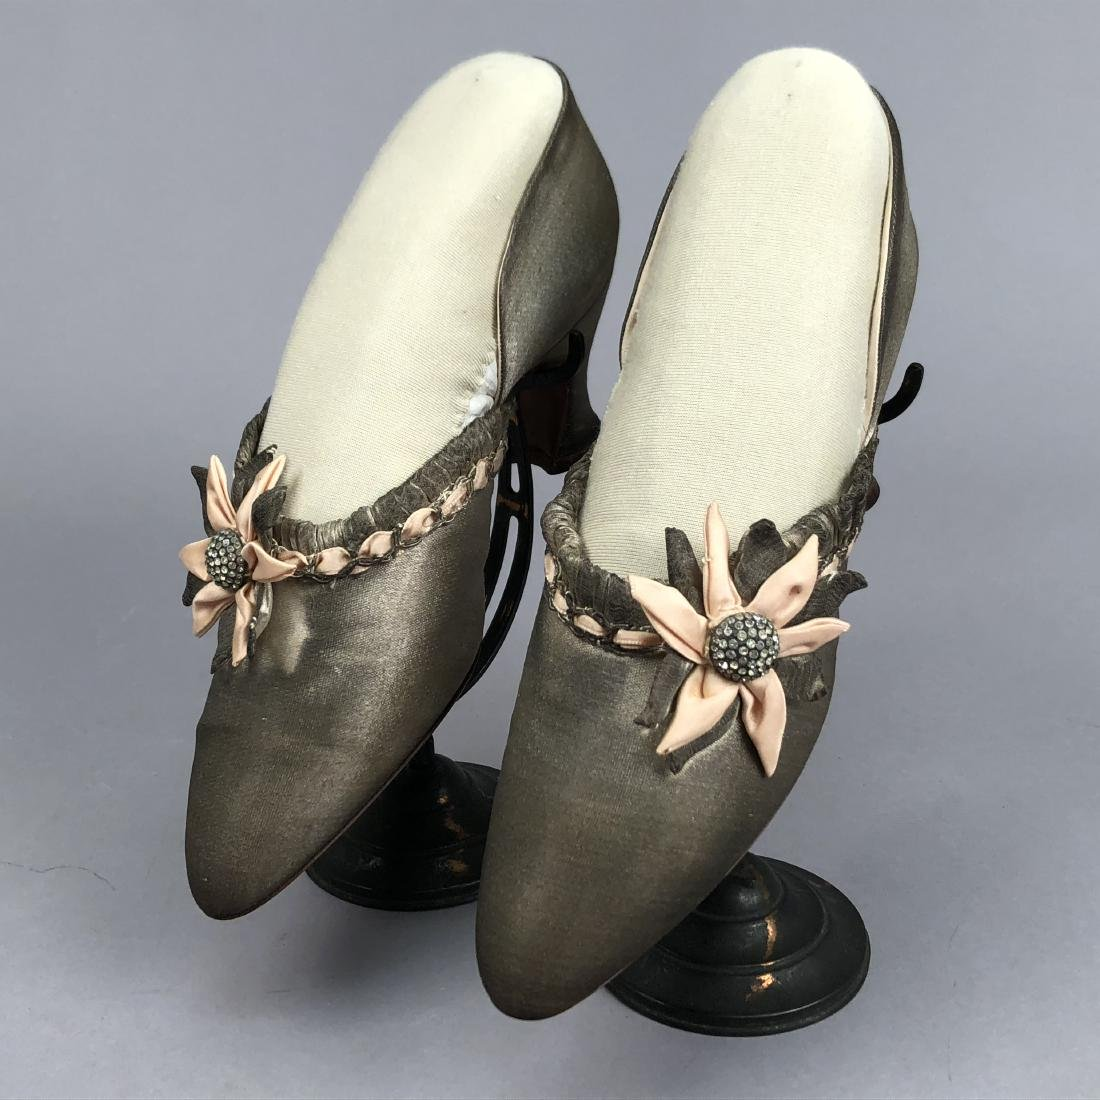 SILVER LAME SLIPPERS with RHINESTONES, 1930s